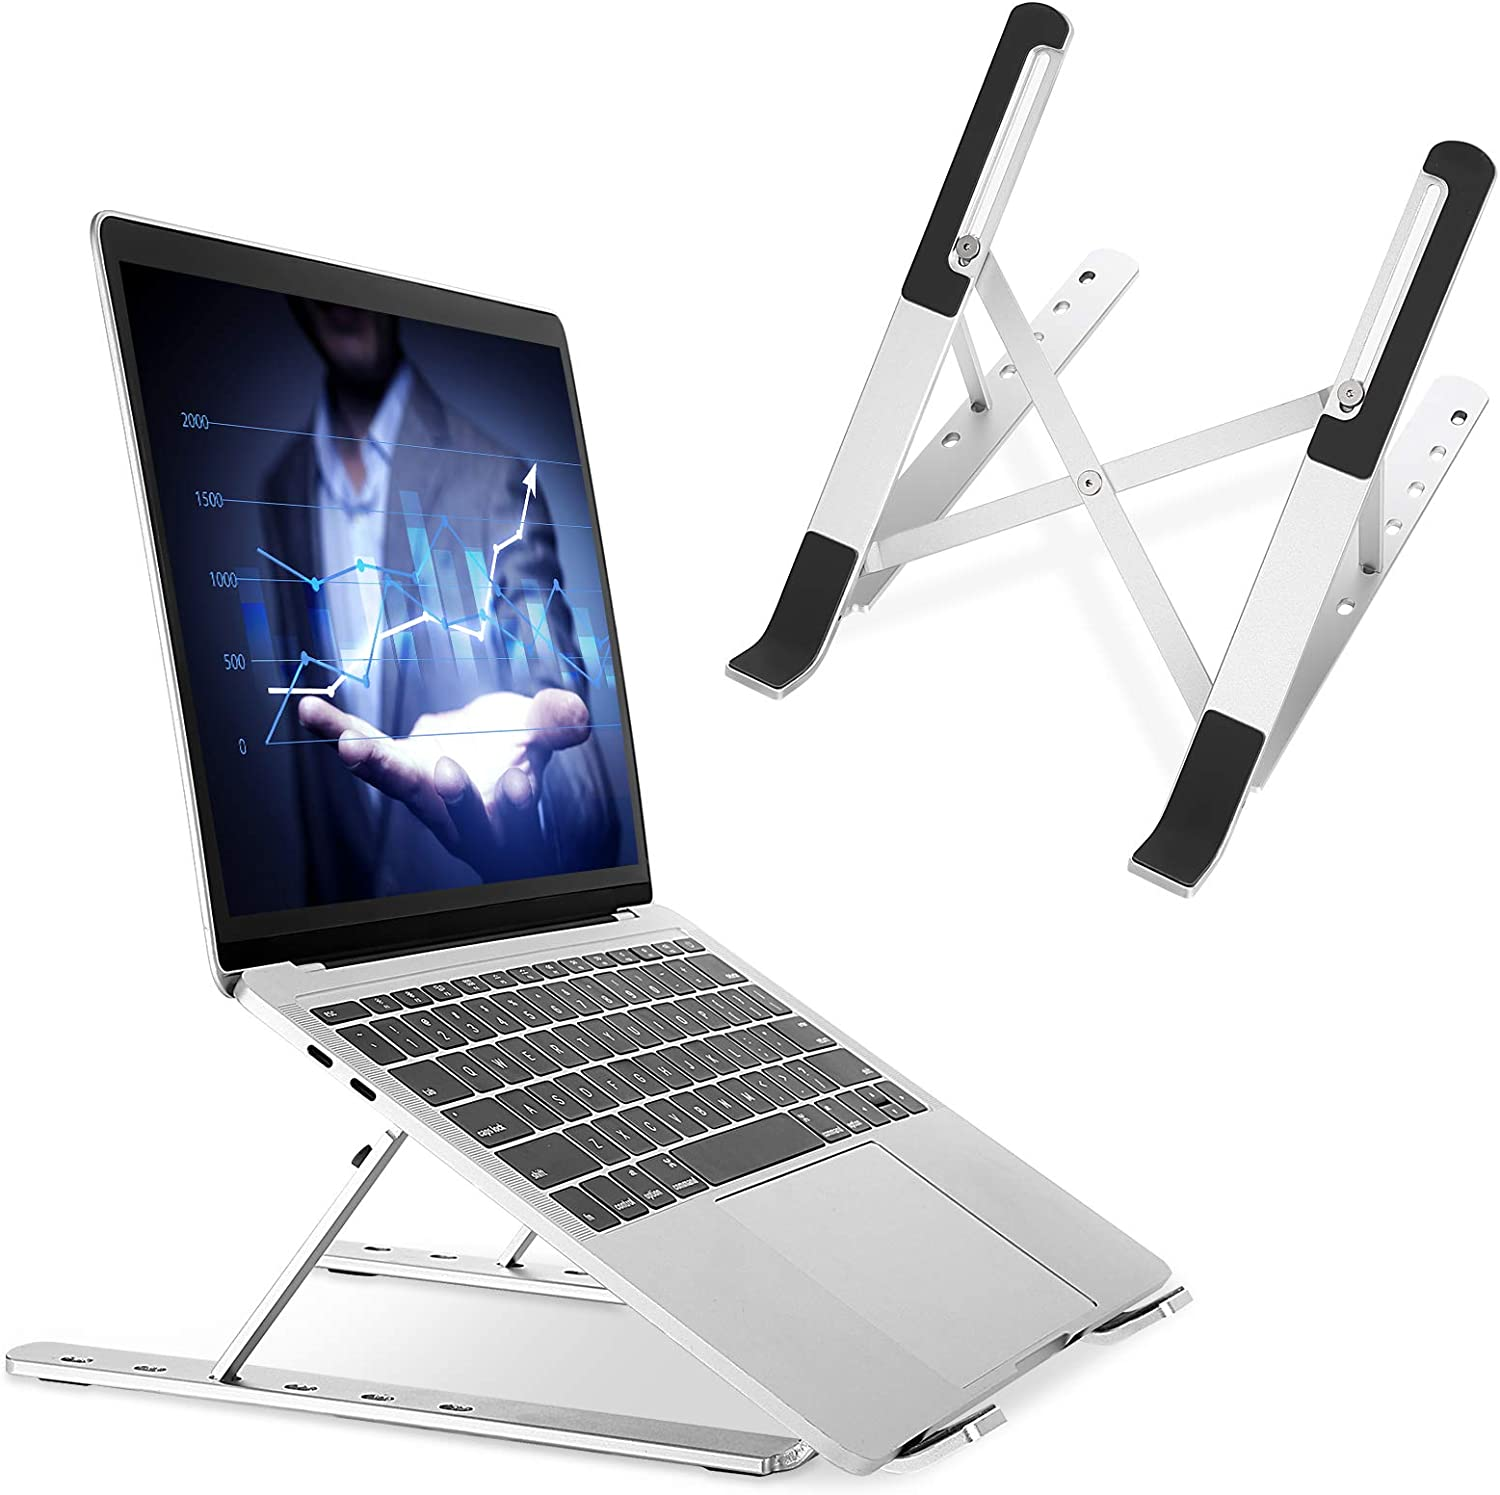 Laptop In sale a popularity Stand Holder Notebook Co Ventilated Aluminum